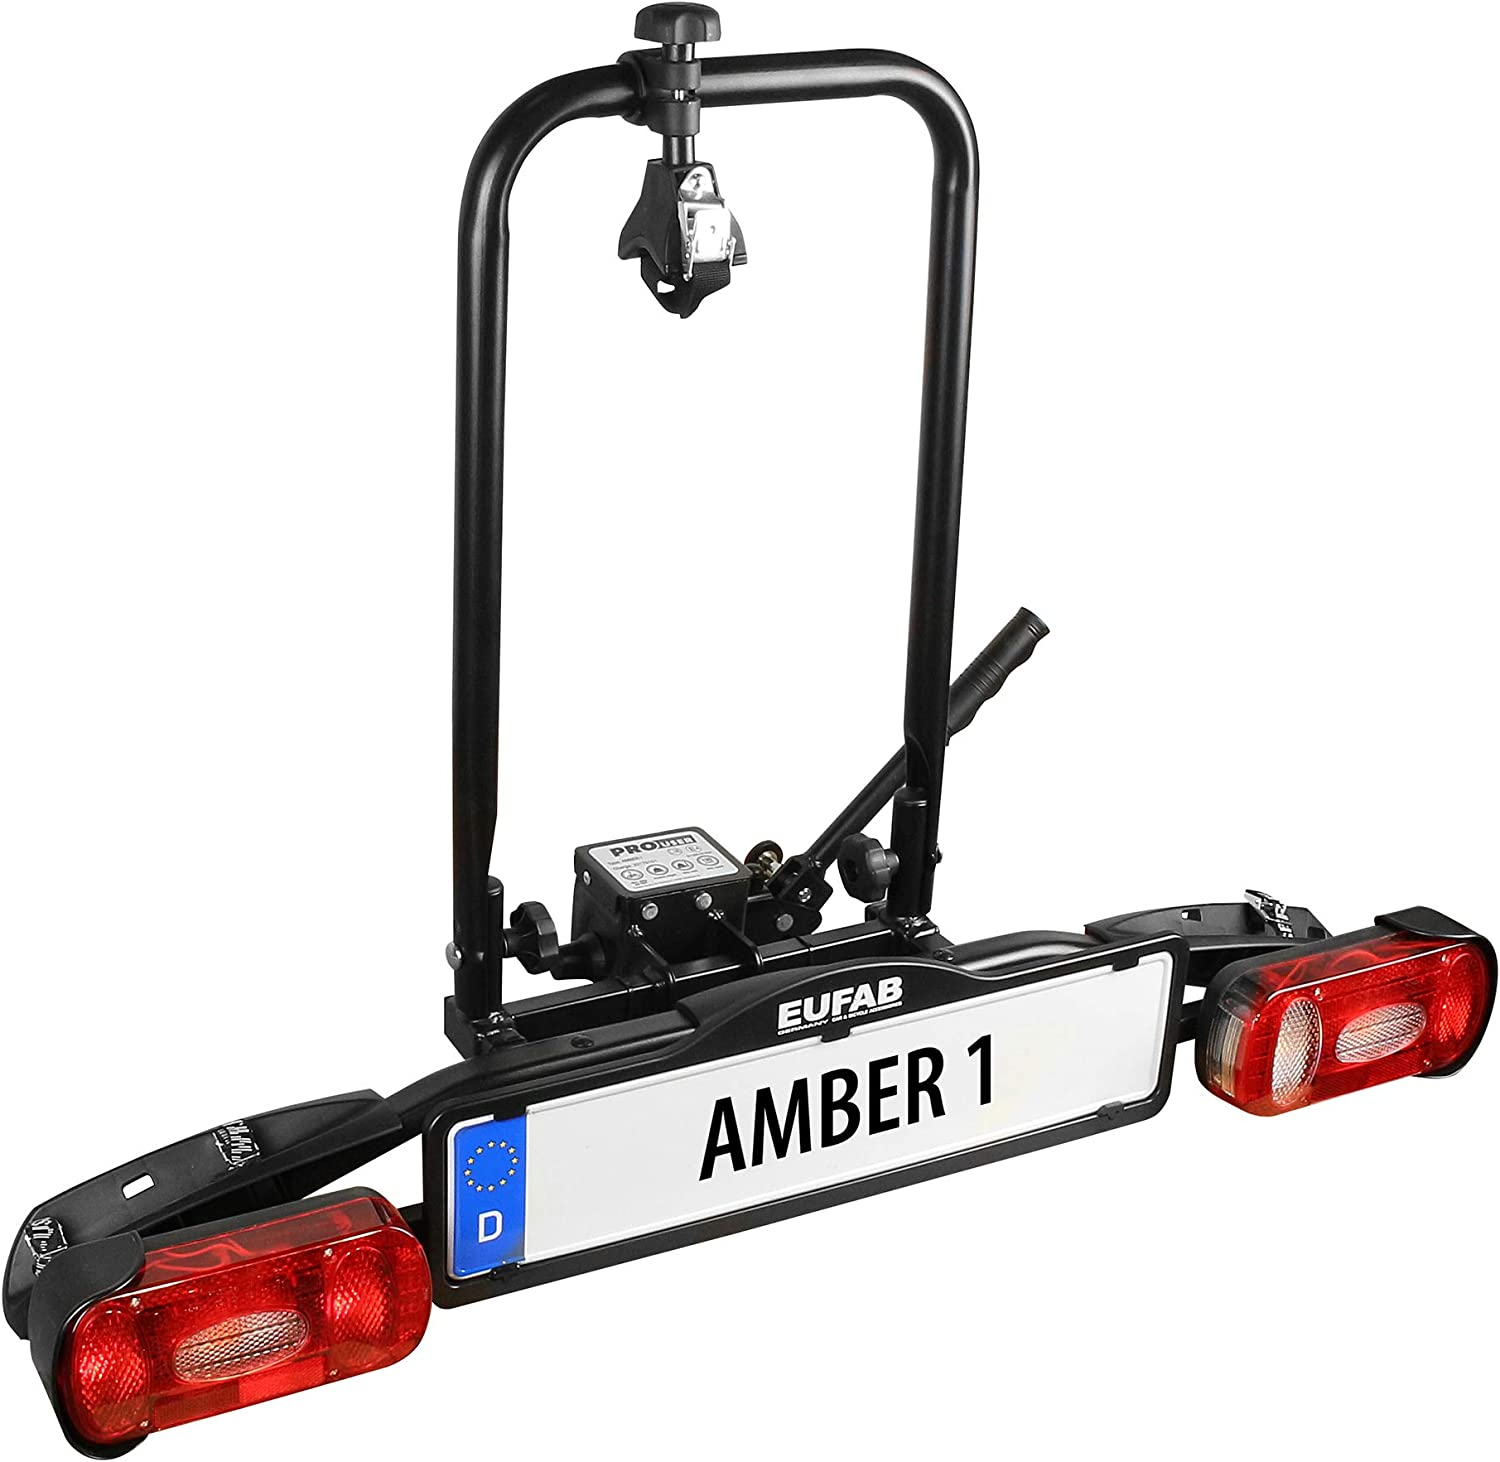 EUFAB 11559 Amber 1 Bicycle Carrier Suitable for E-Bikes